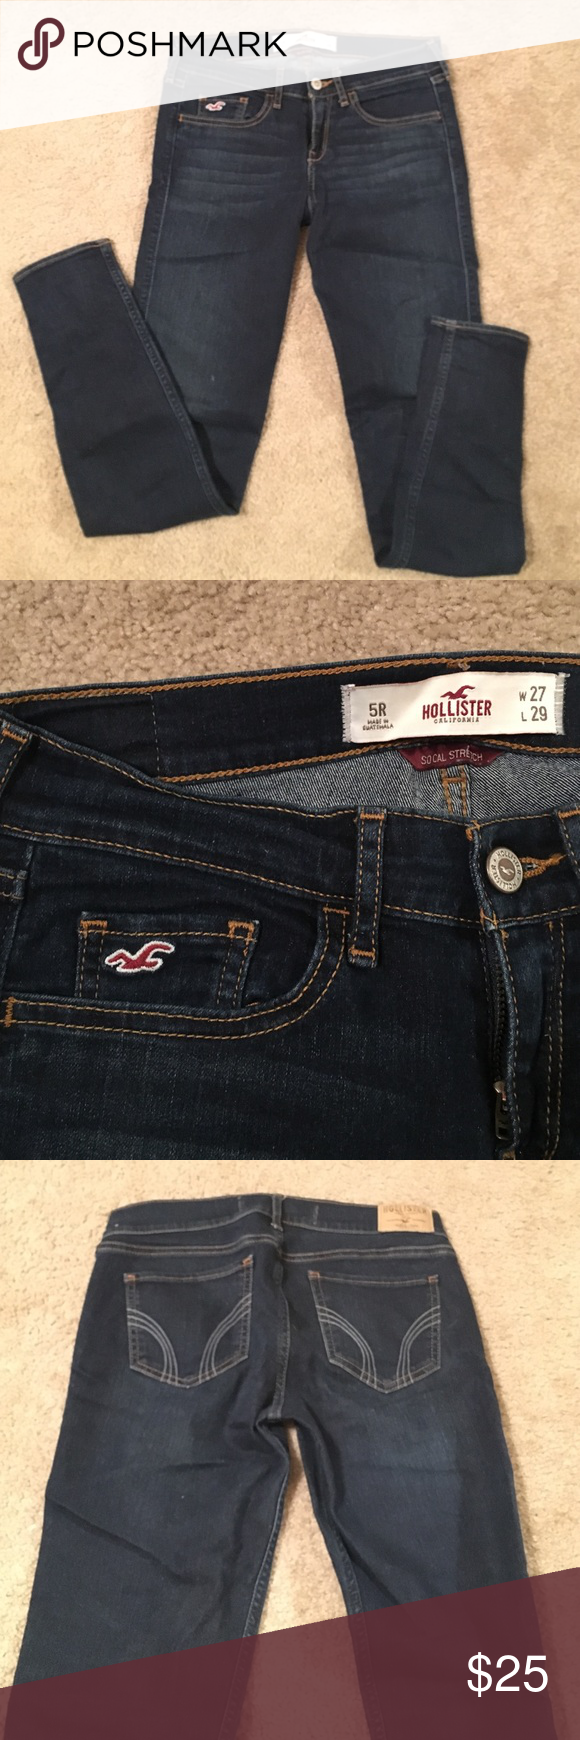 Hollister Jeans Size 5R. Stretchy, skinny jeans. Like new. Hollister Jeans Skinny